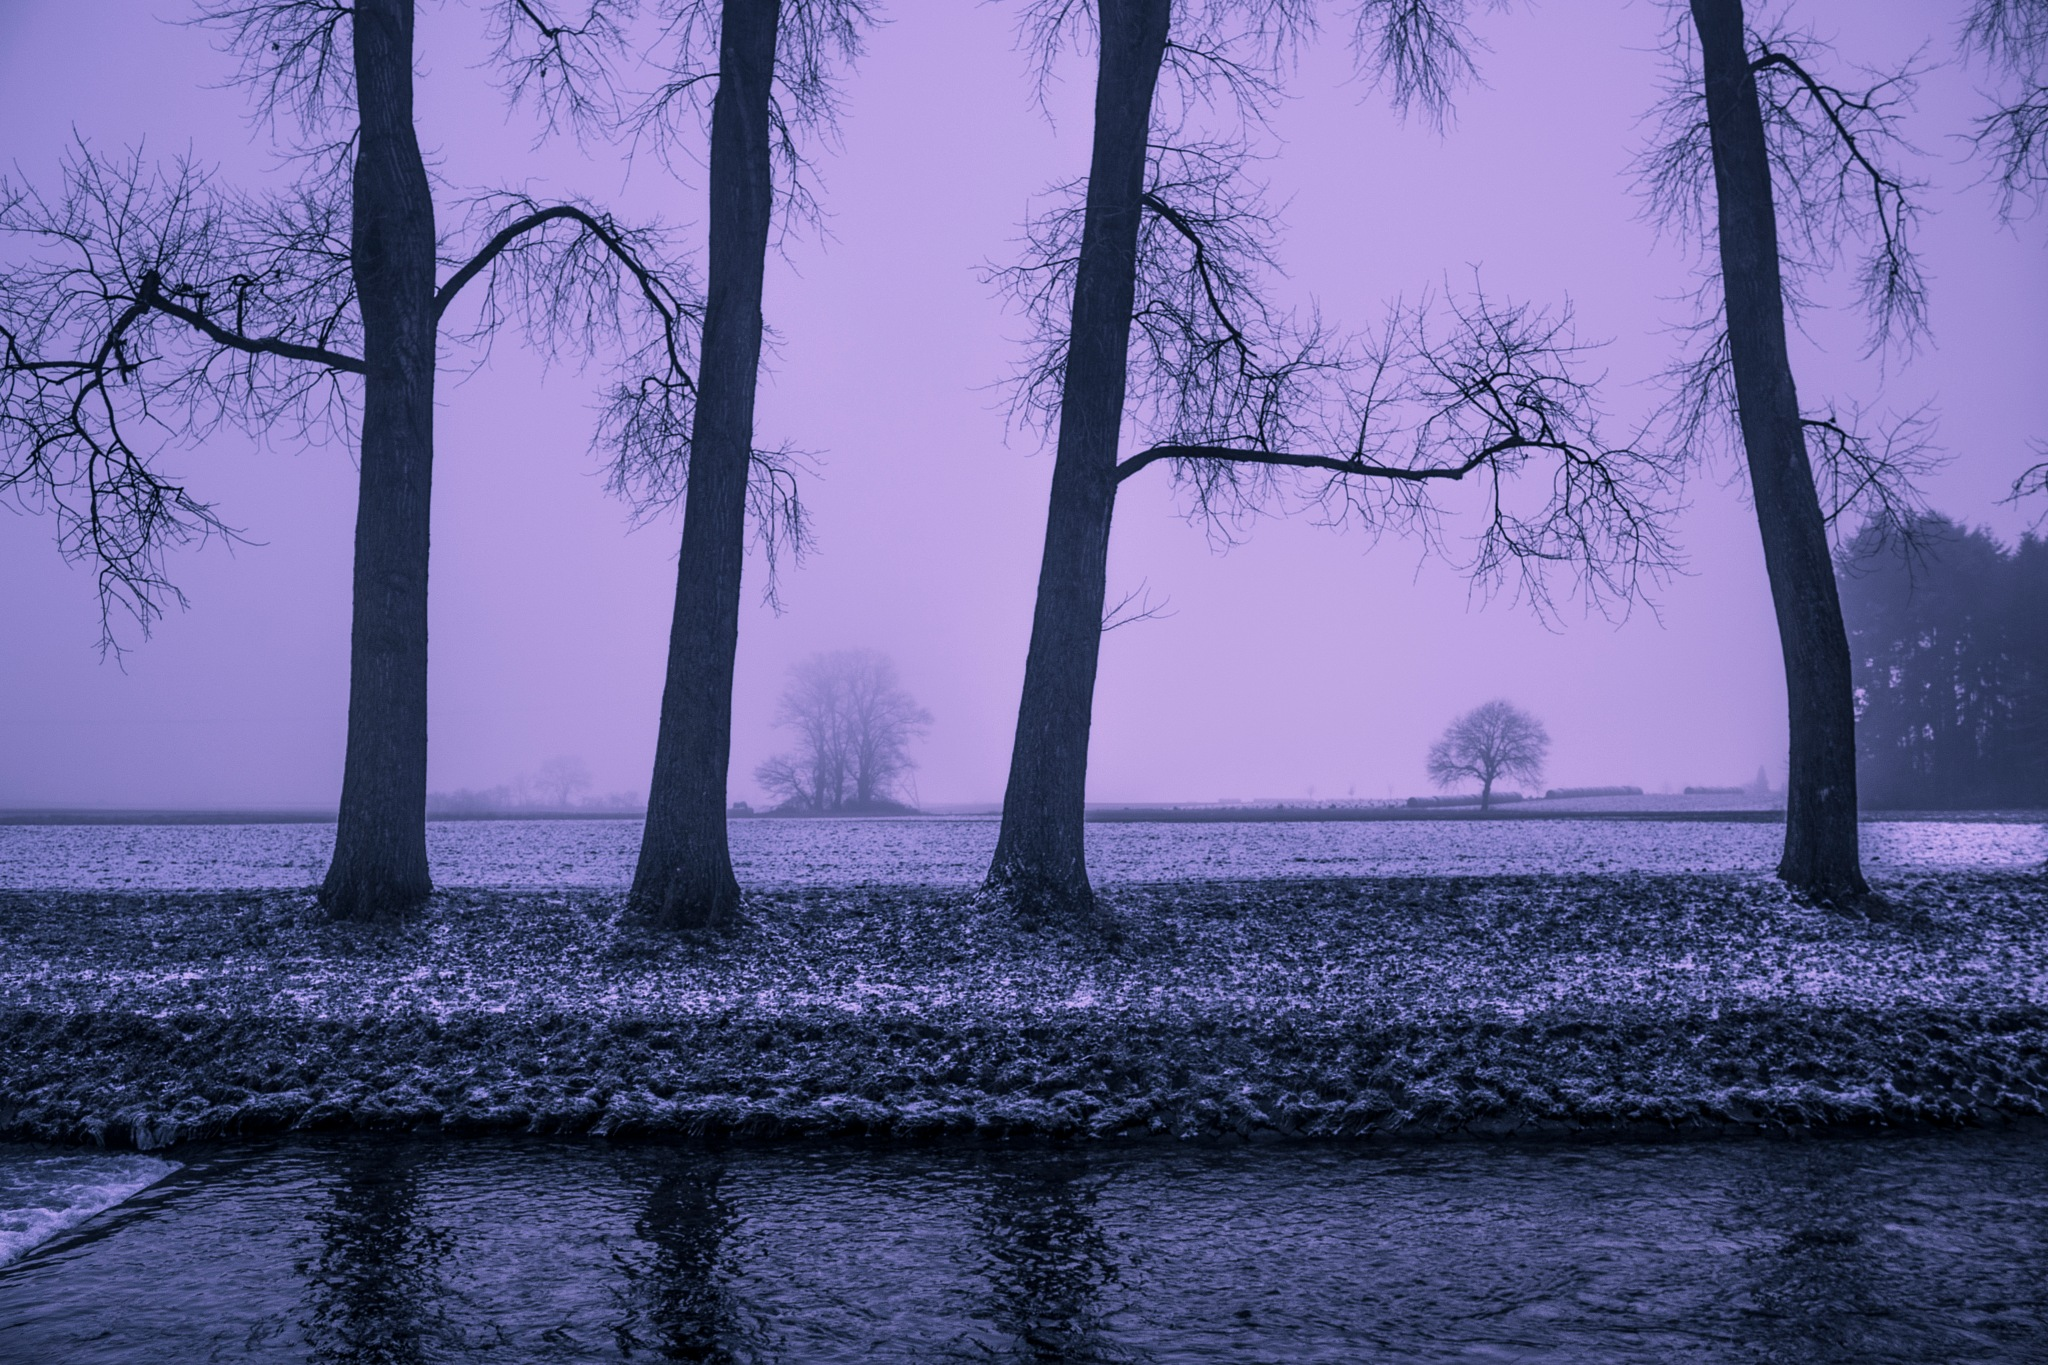 trees by the river by John Palmer